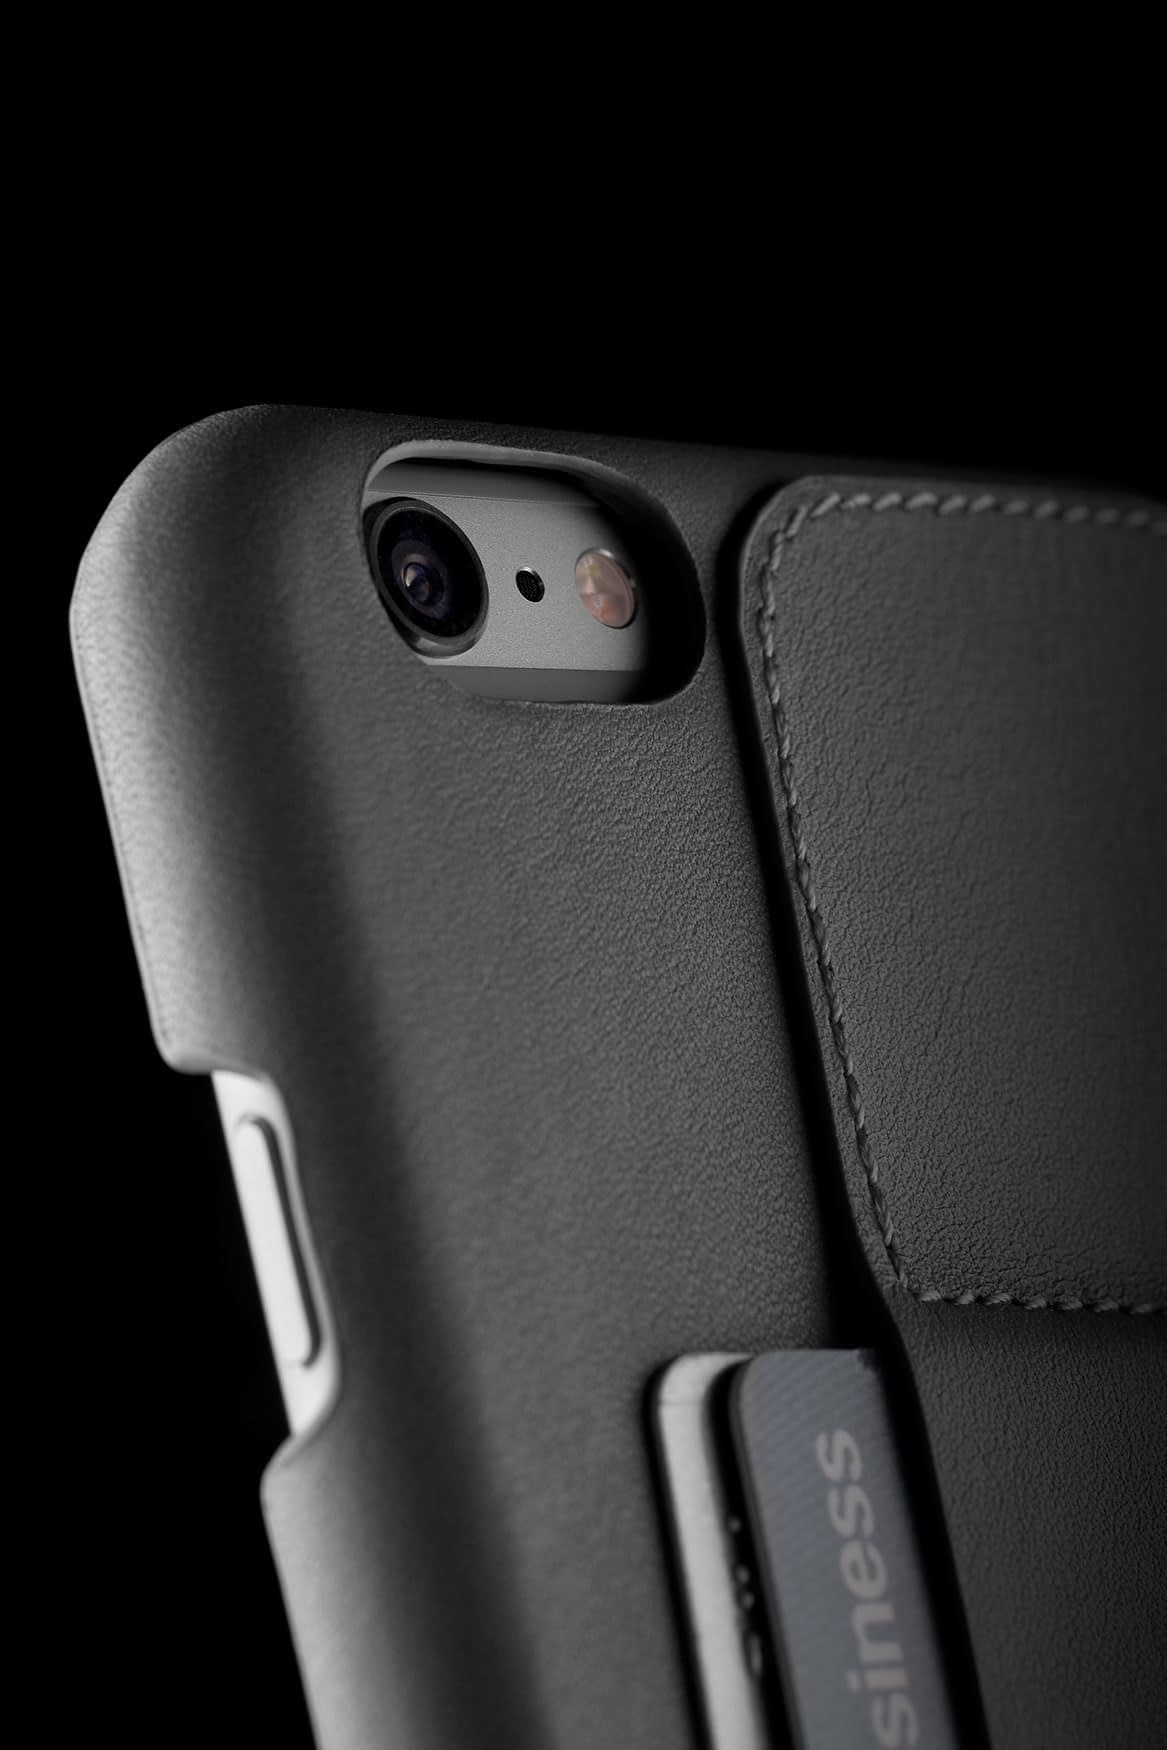 Leather Wallet Case 80° for iPhone 6 Plus Gray Lifestyle 005